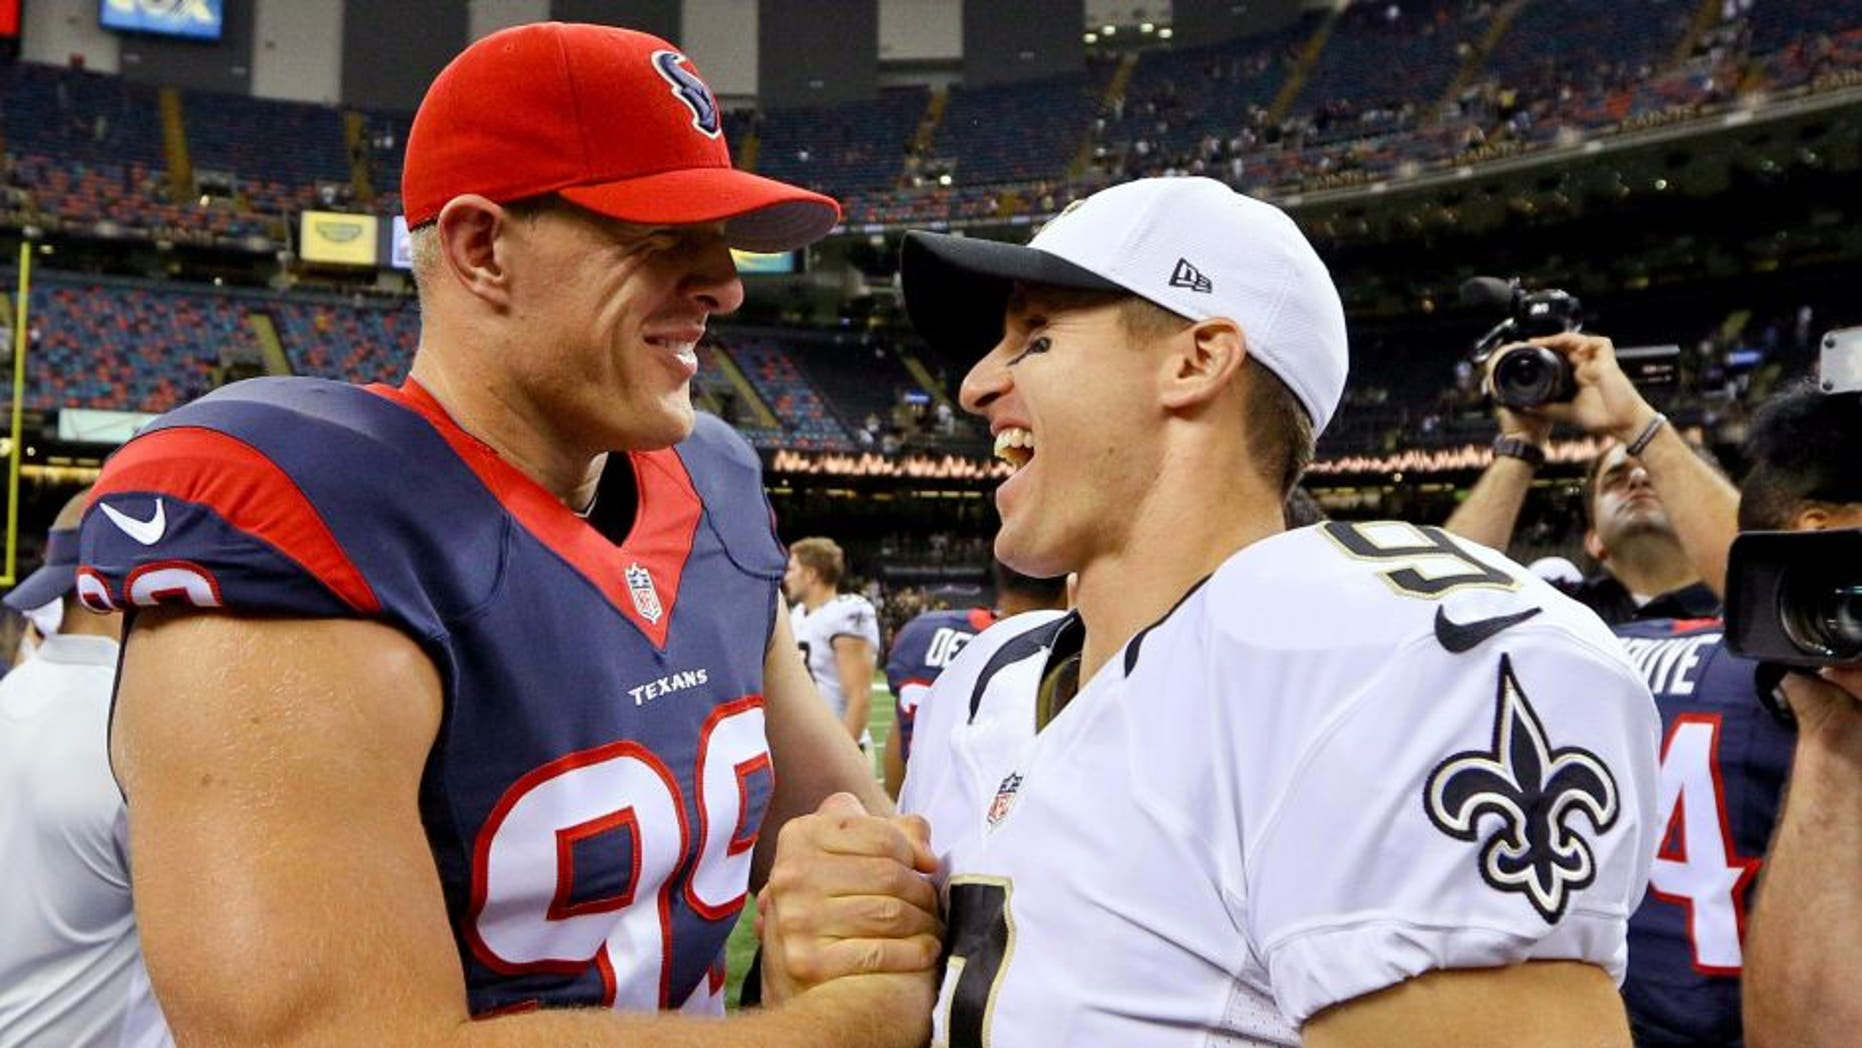 Aug 30, 2015; New Orleans, LA, USA; New Orleans Saints quarterback Drew Brees (9) and Houston Texans defensive end J.J. Watt (99) talk following a preseason game at the Mercedes-Benz Superdome. The Texans defeated the Saints 27-13. Mandatory Credit: Derick E. Hingle-USA TODAY Sports